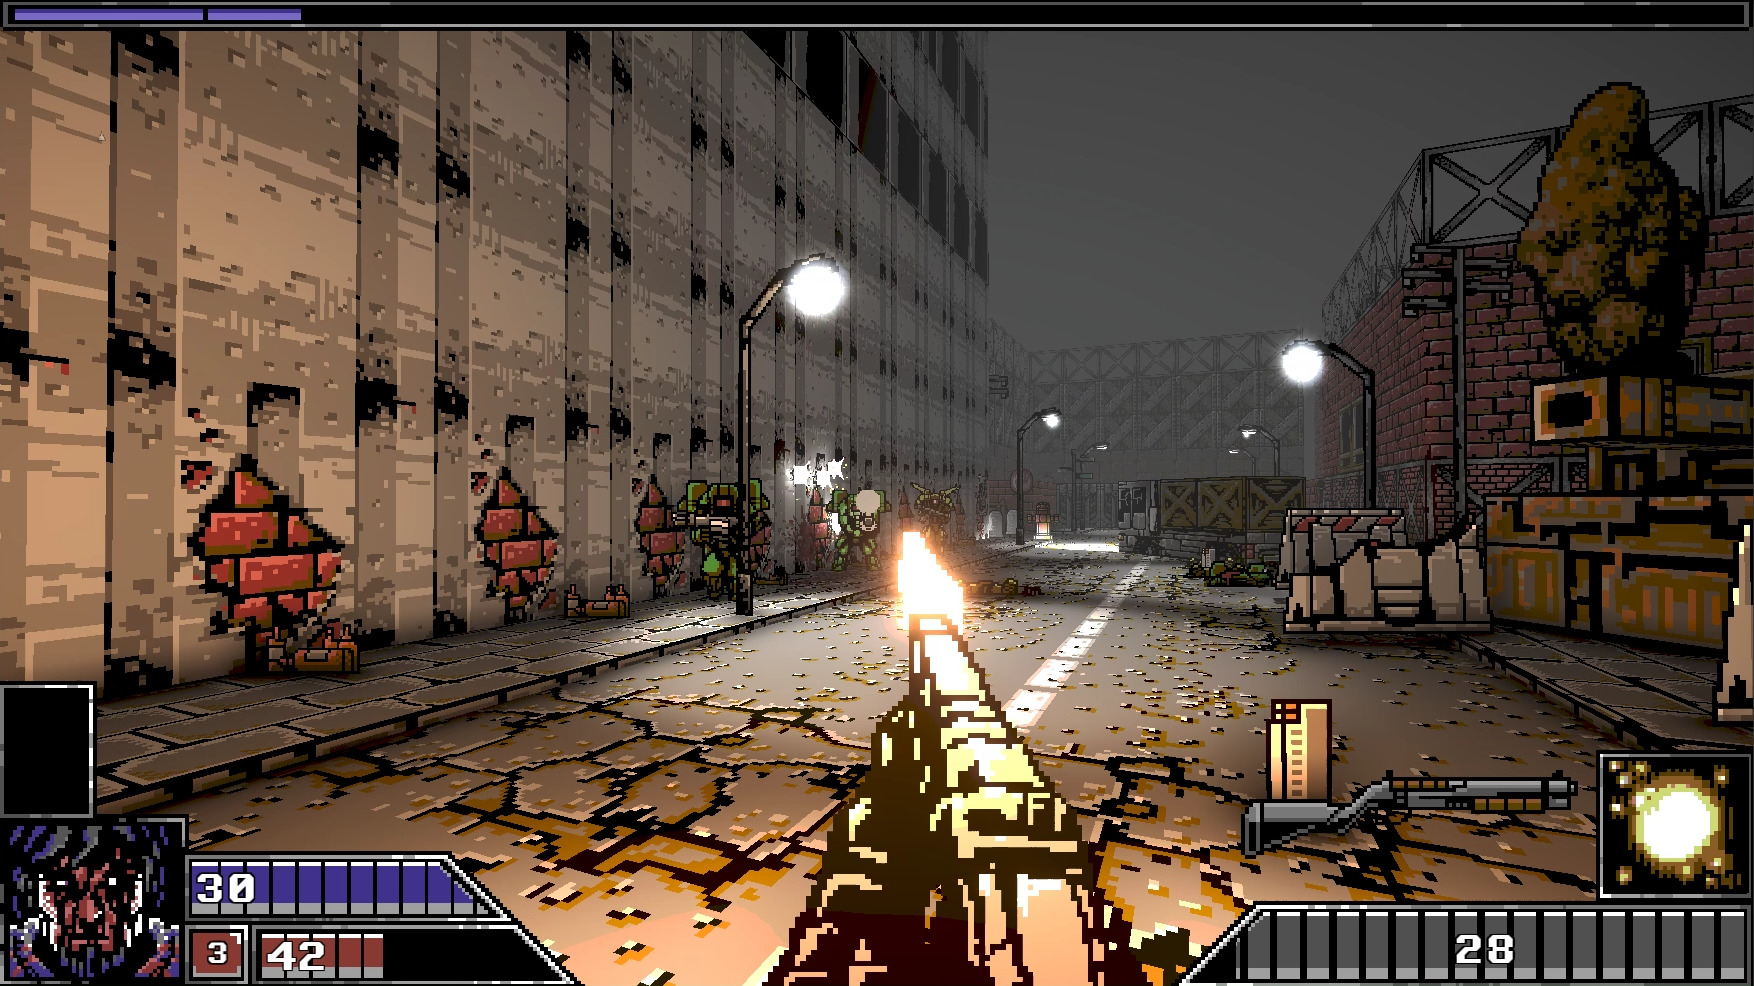 Project Warlock retro FPS October 18th | Rock Paper Shotgun